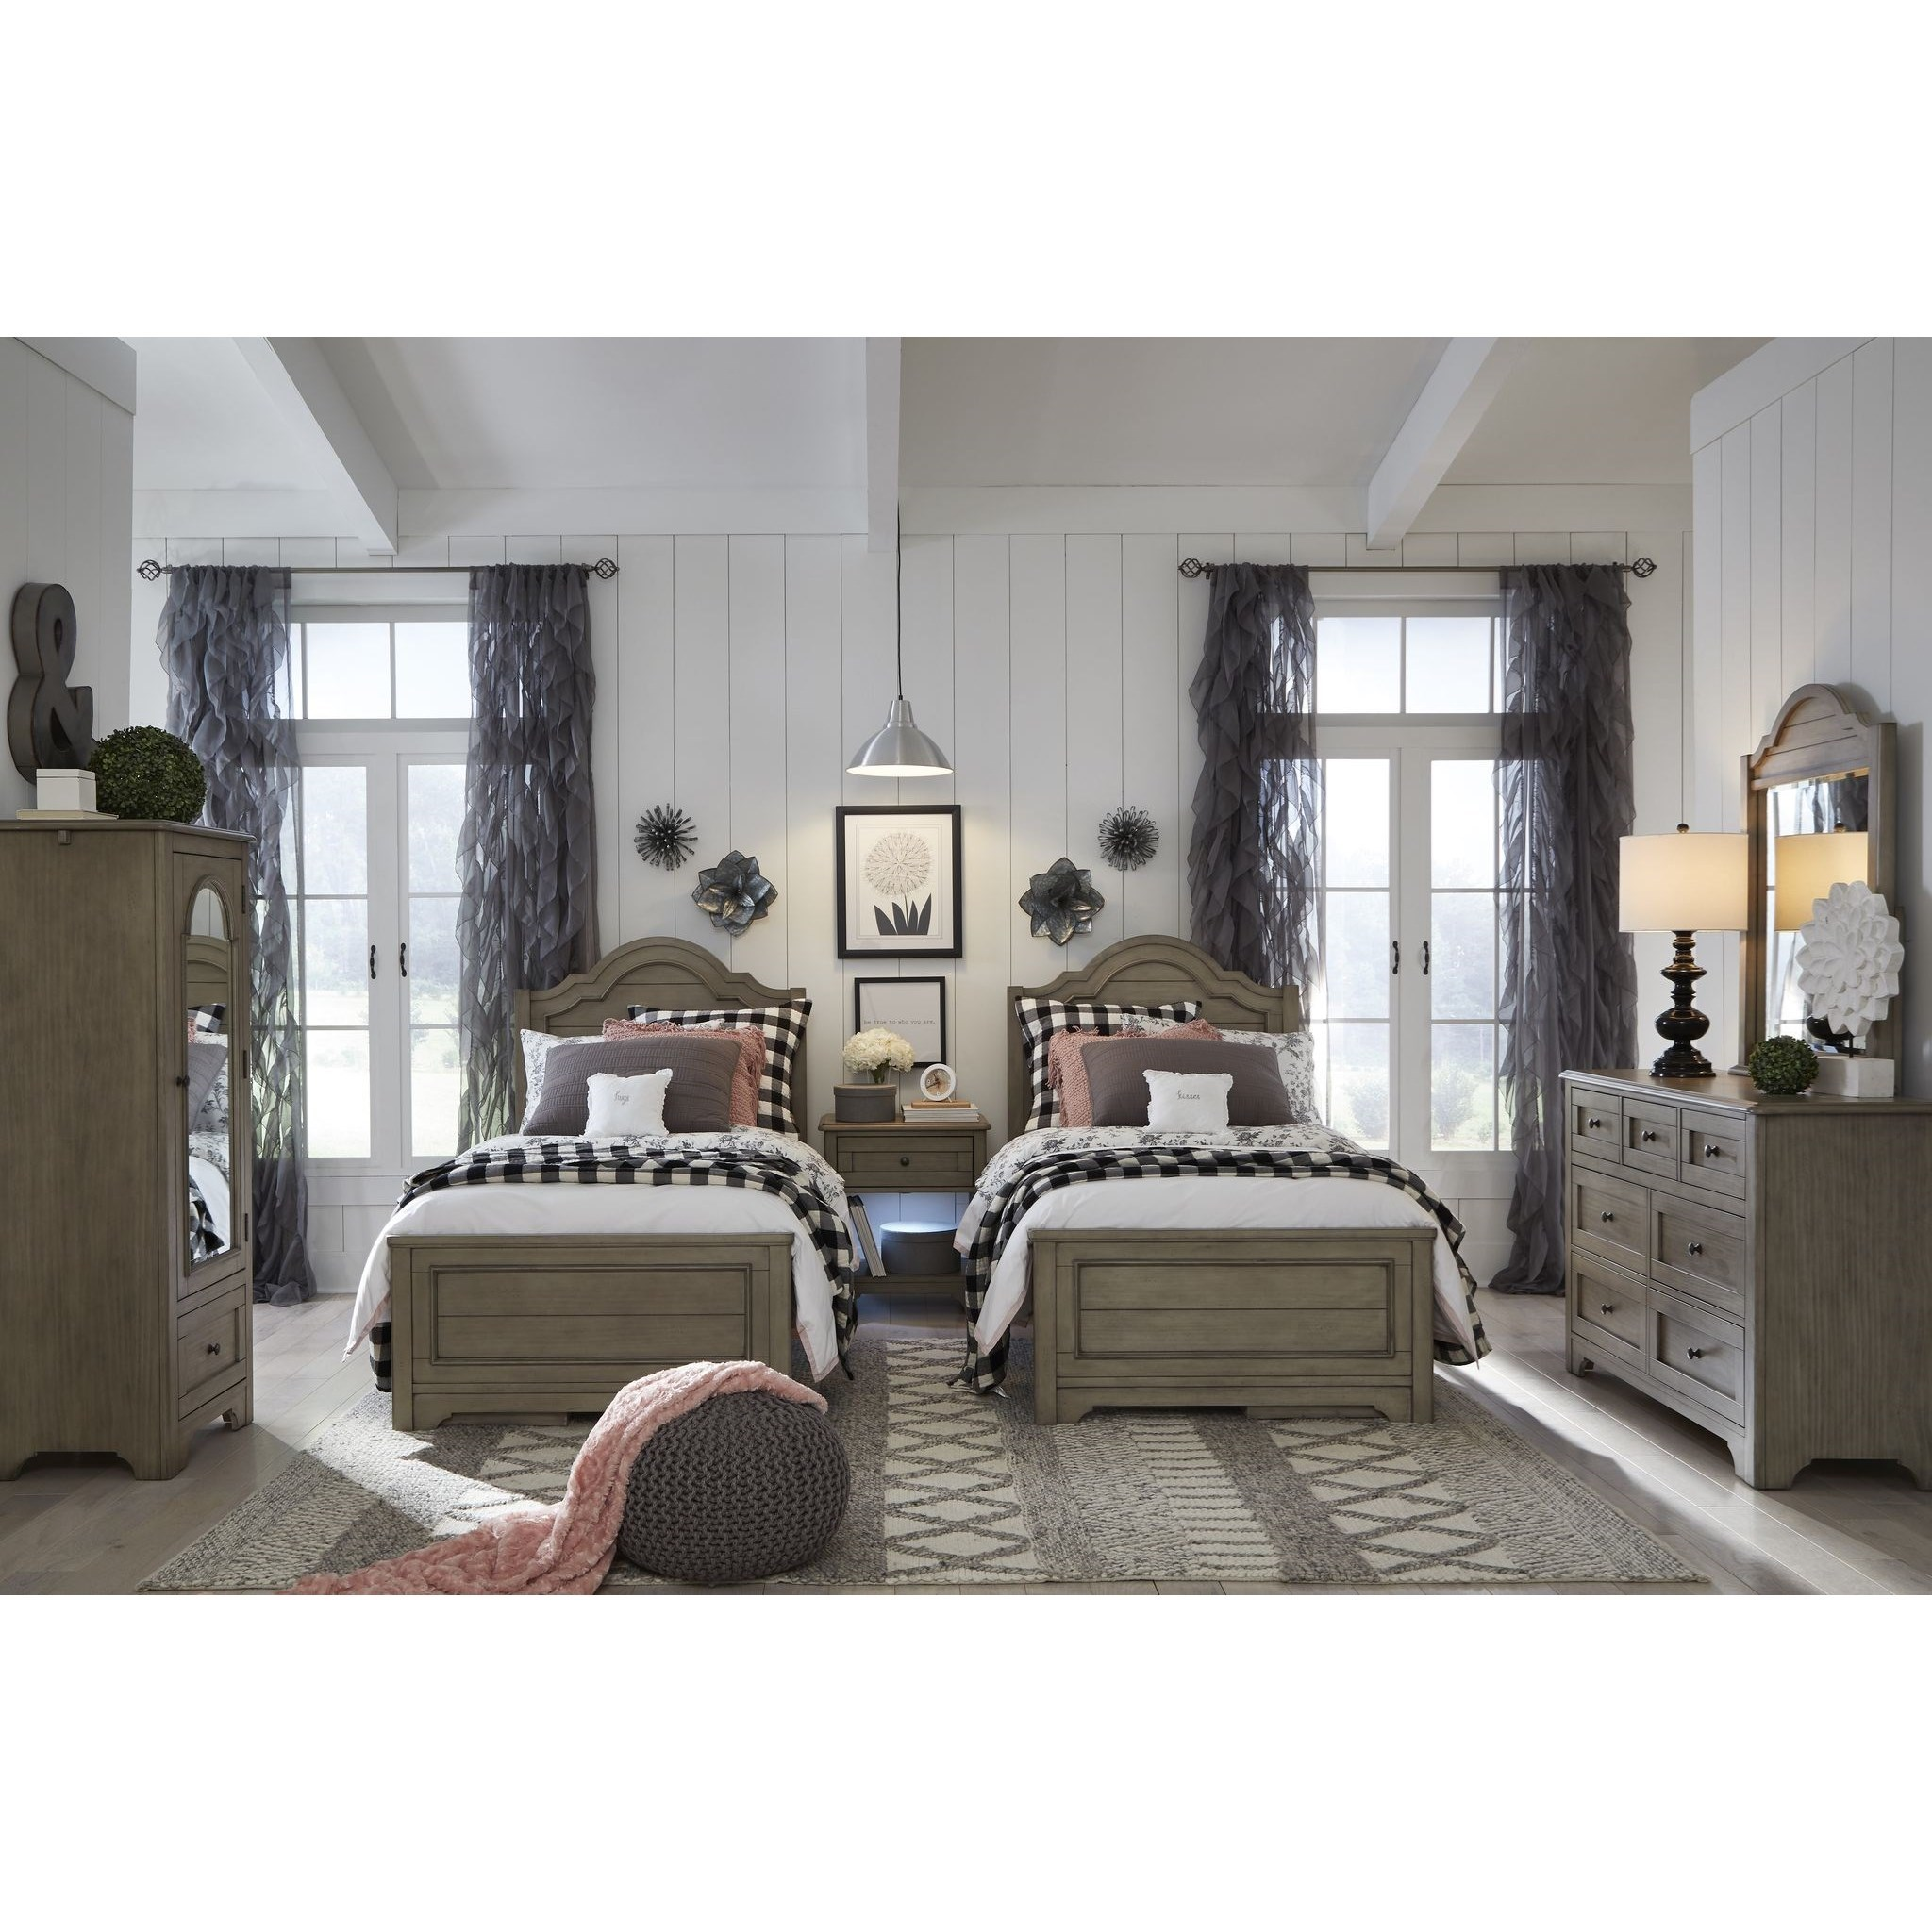 Farm House Twin Bedroom Group by Legacy Classic Kids at Mueller Furniture